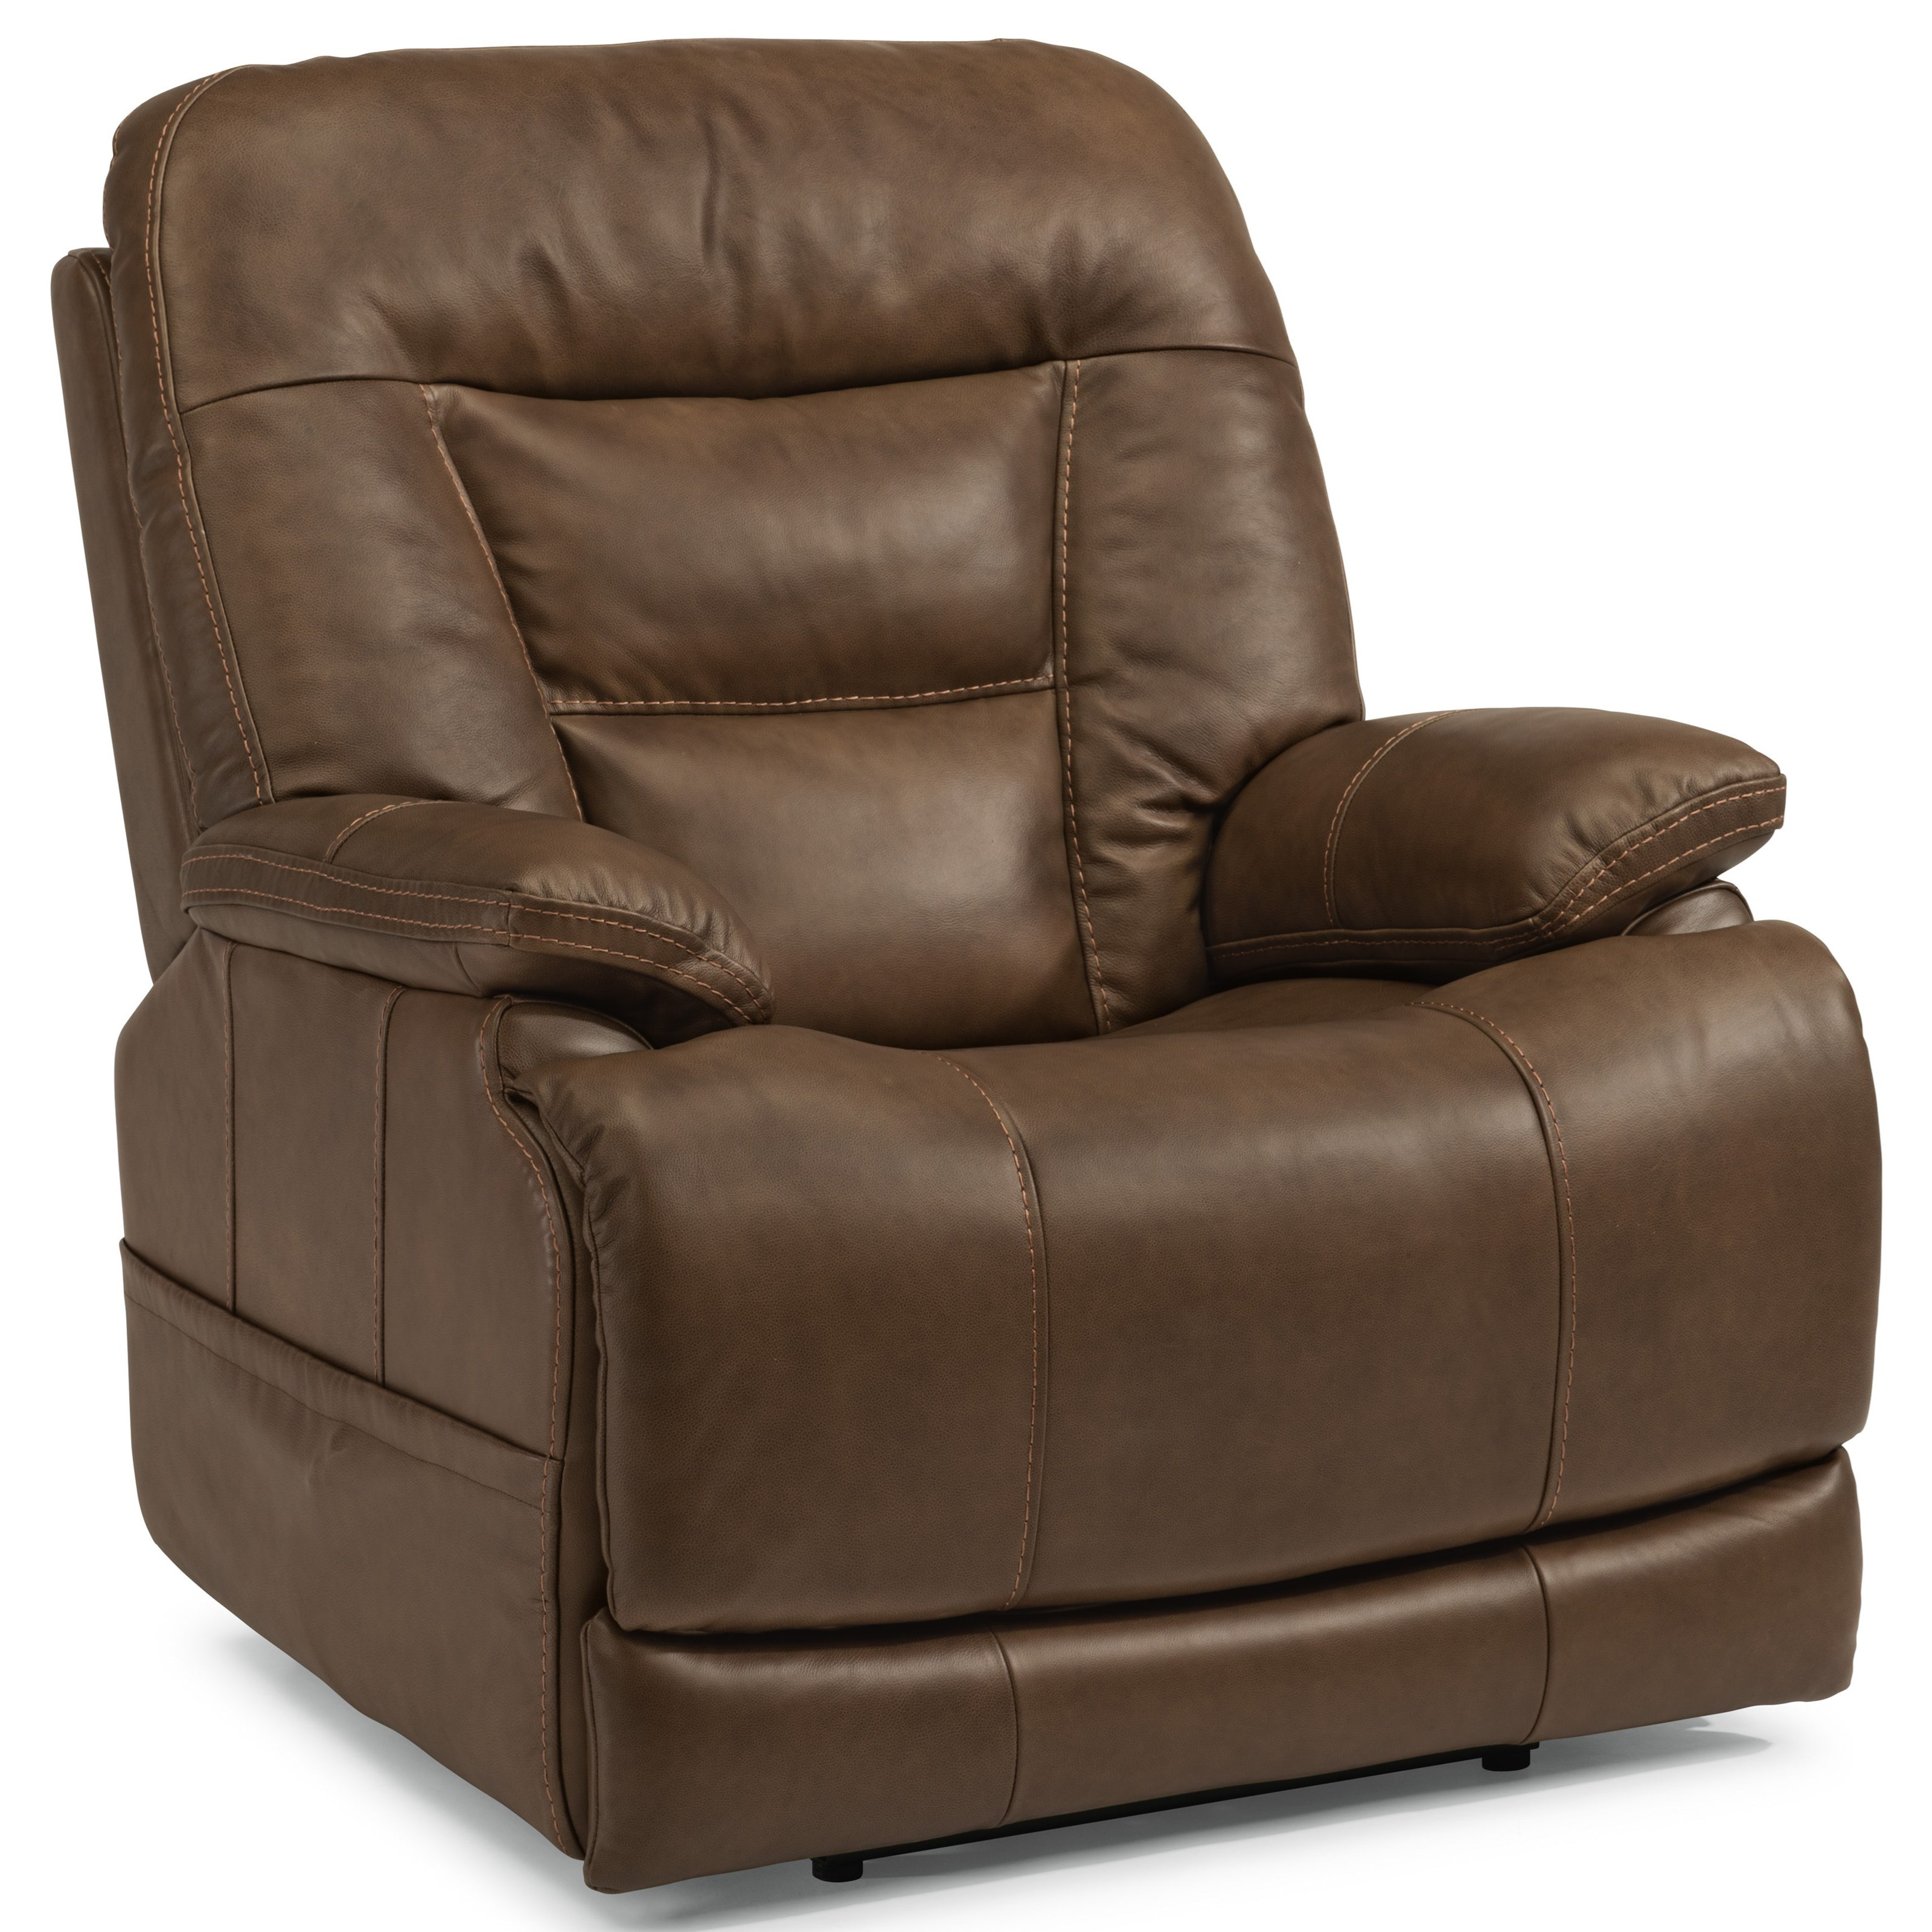 Flexsteel Latitudes Stanford 1589 50ph Casual Power Recliner With Power Headrest And Extending